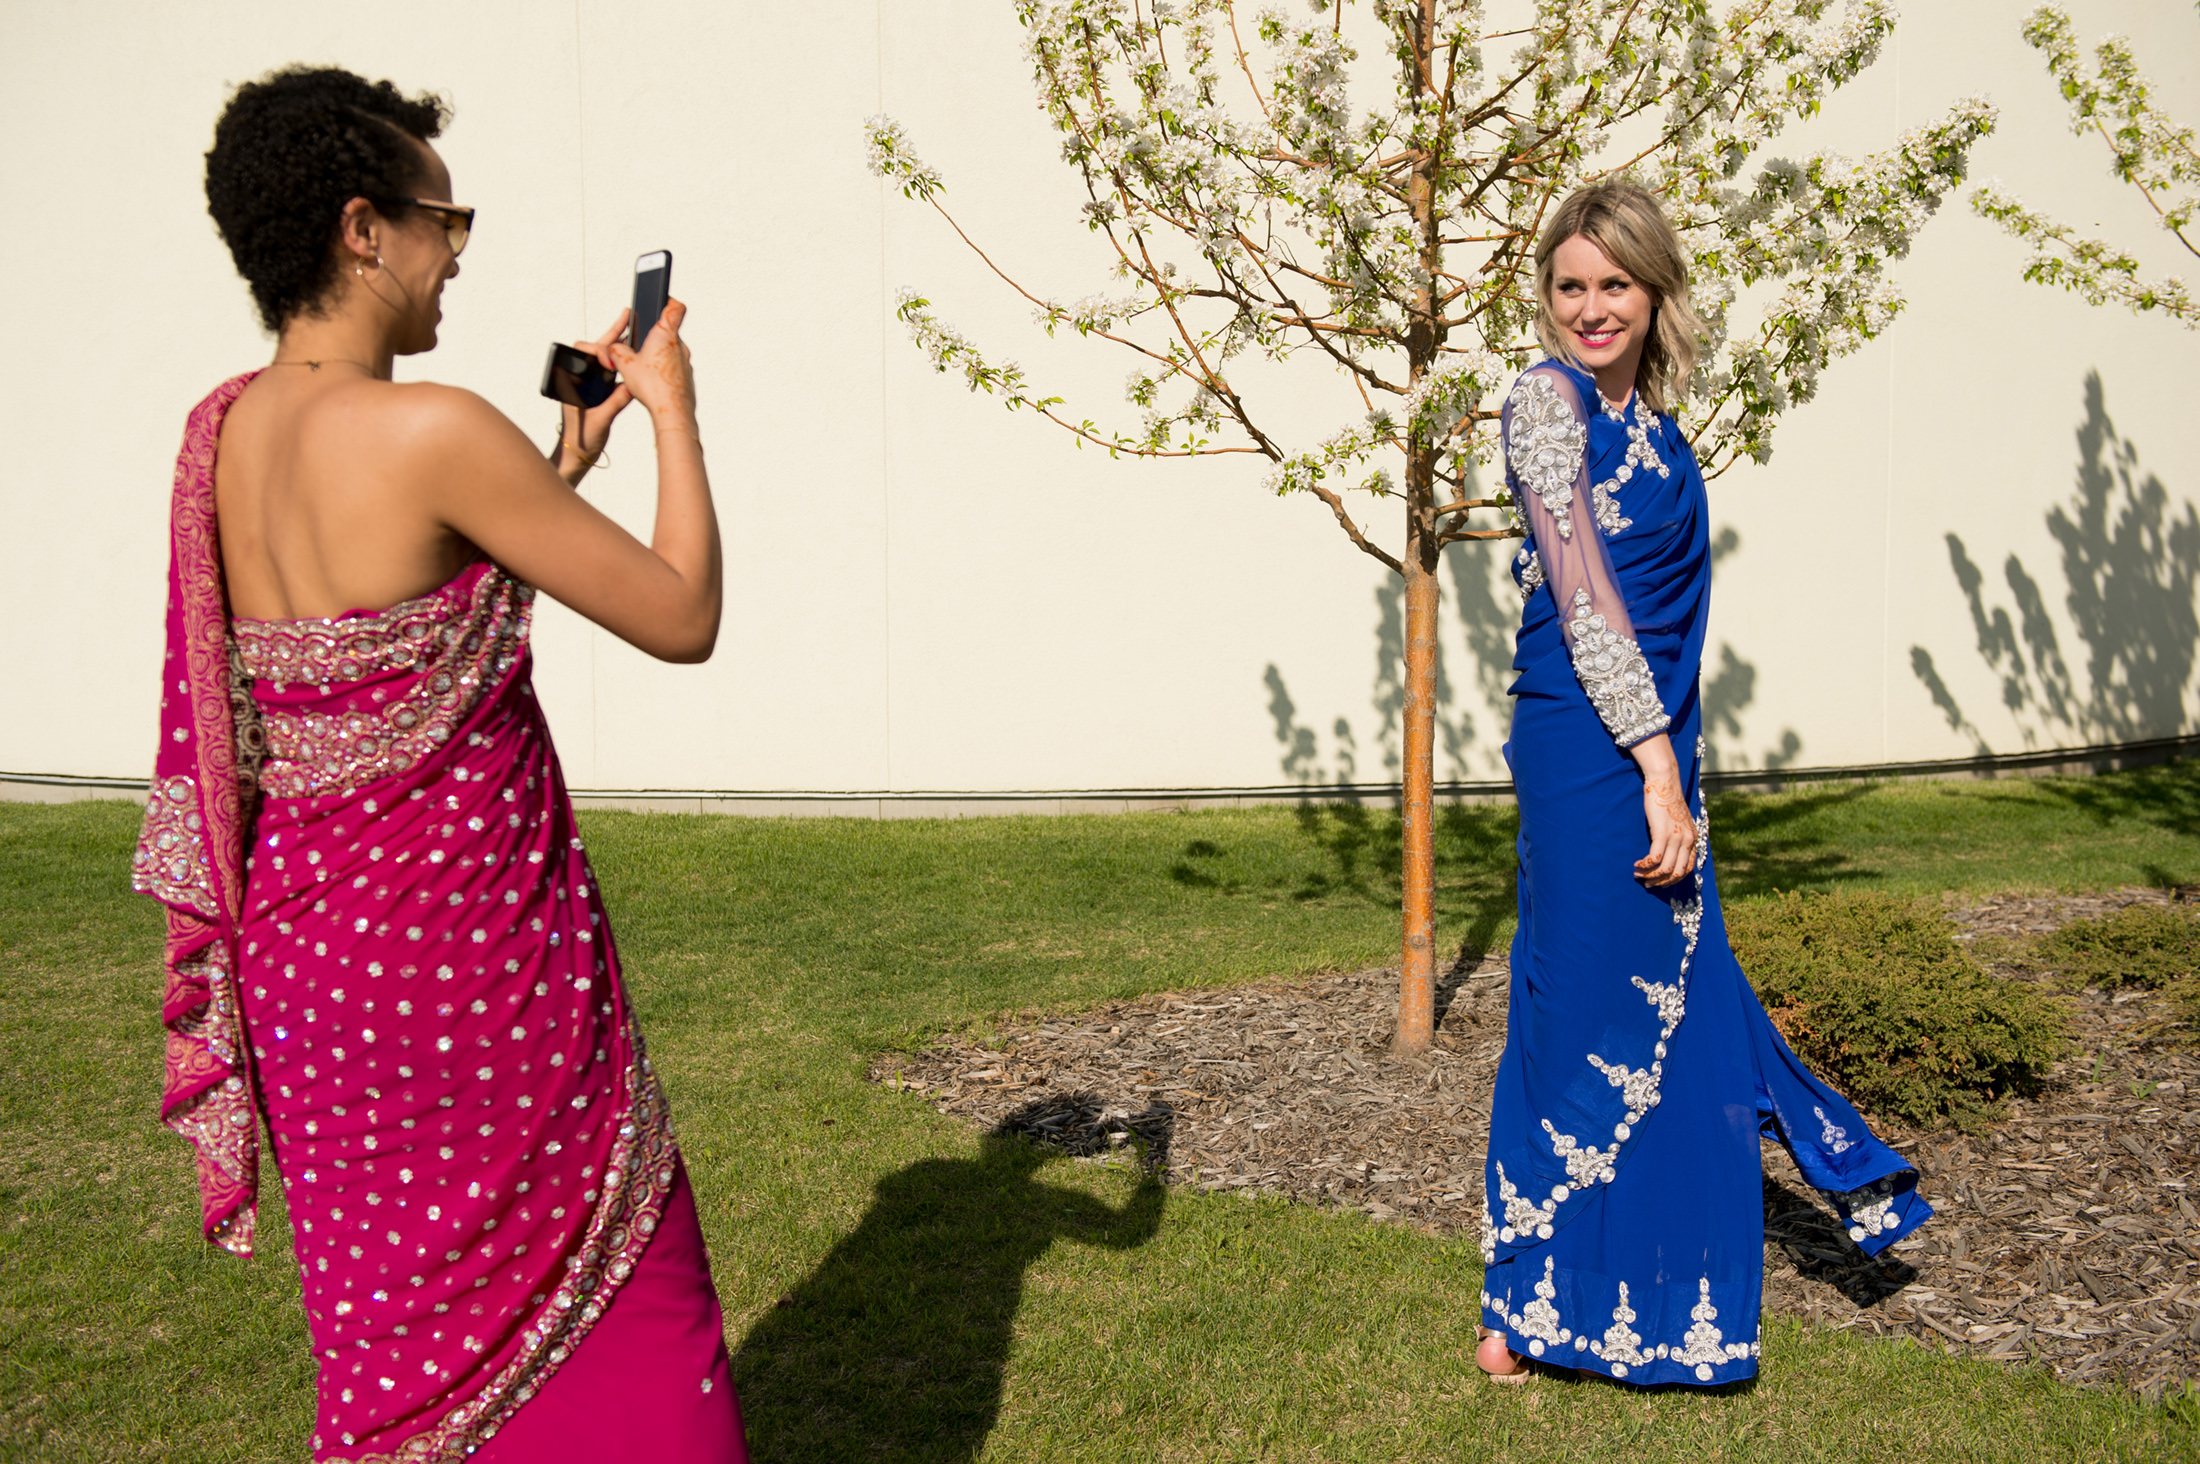 Edmonton_wedding_photographers_enjoy_center_wedding_Kiran_faisal_27.jpg